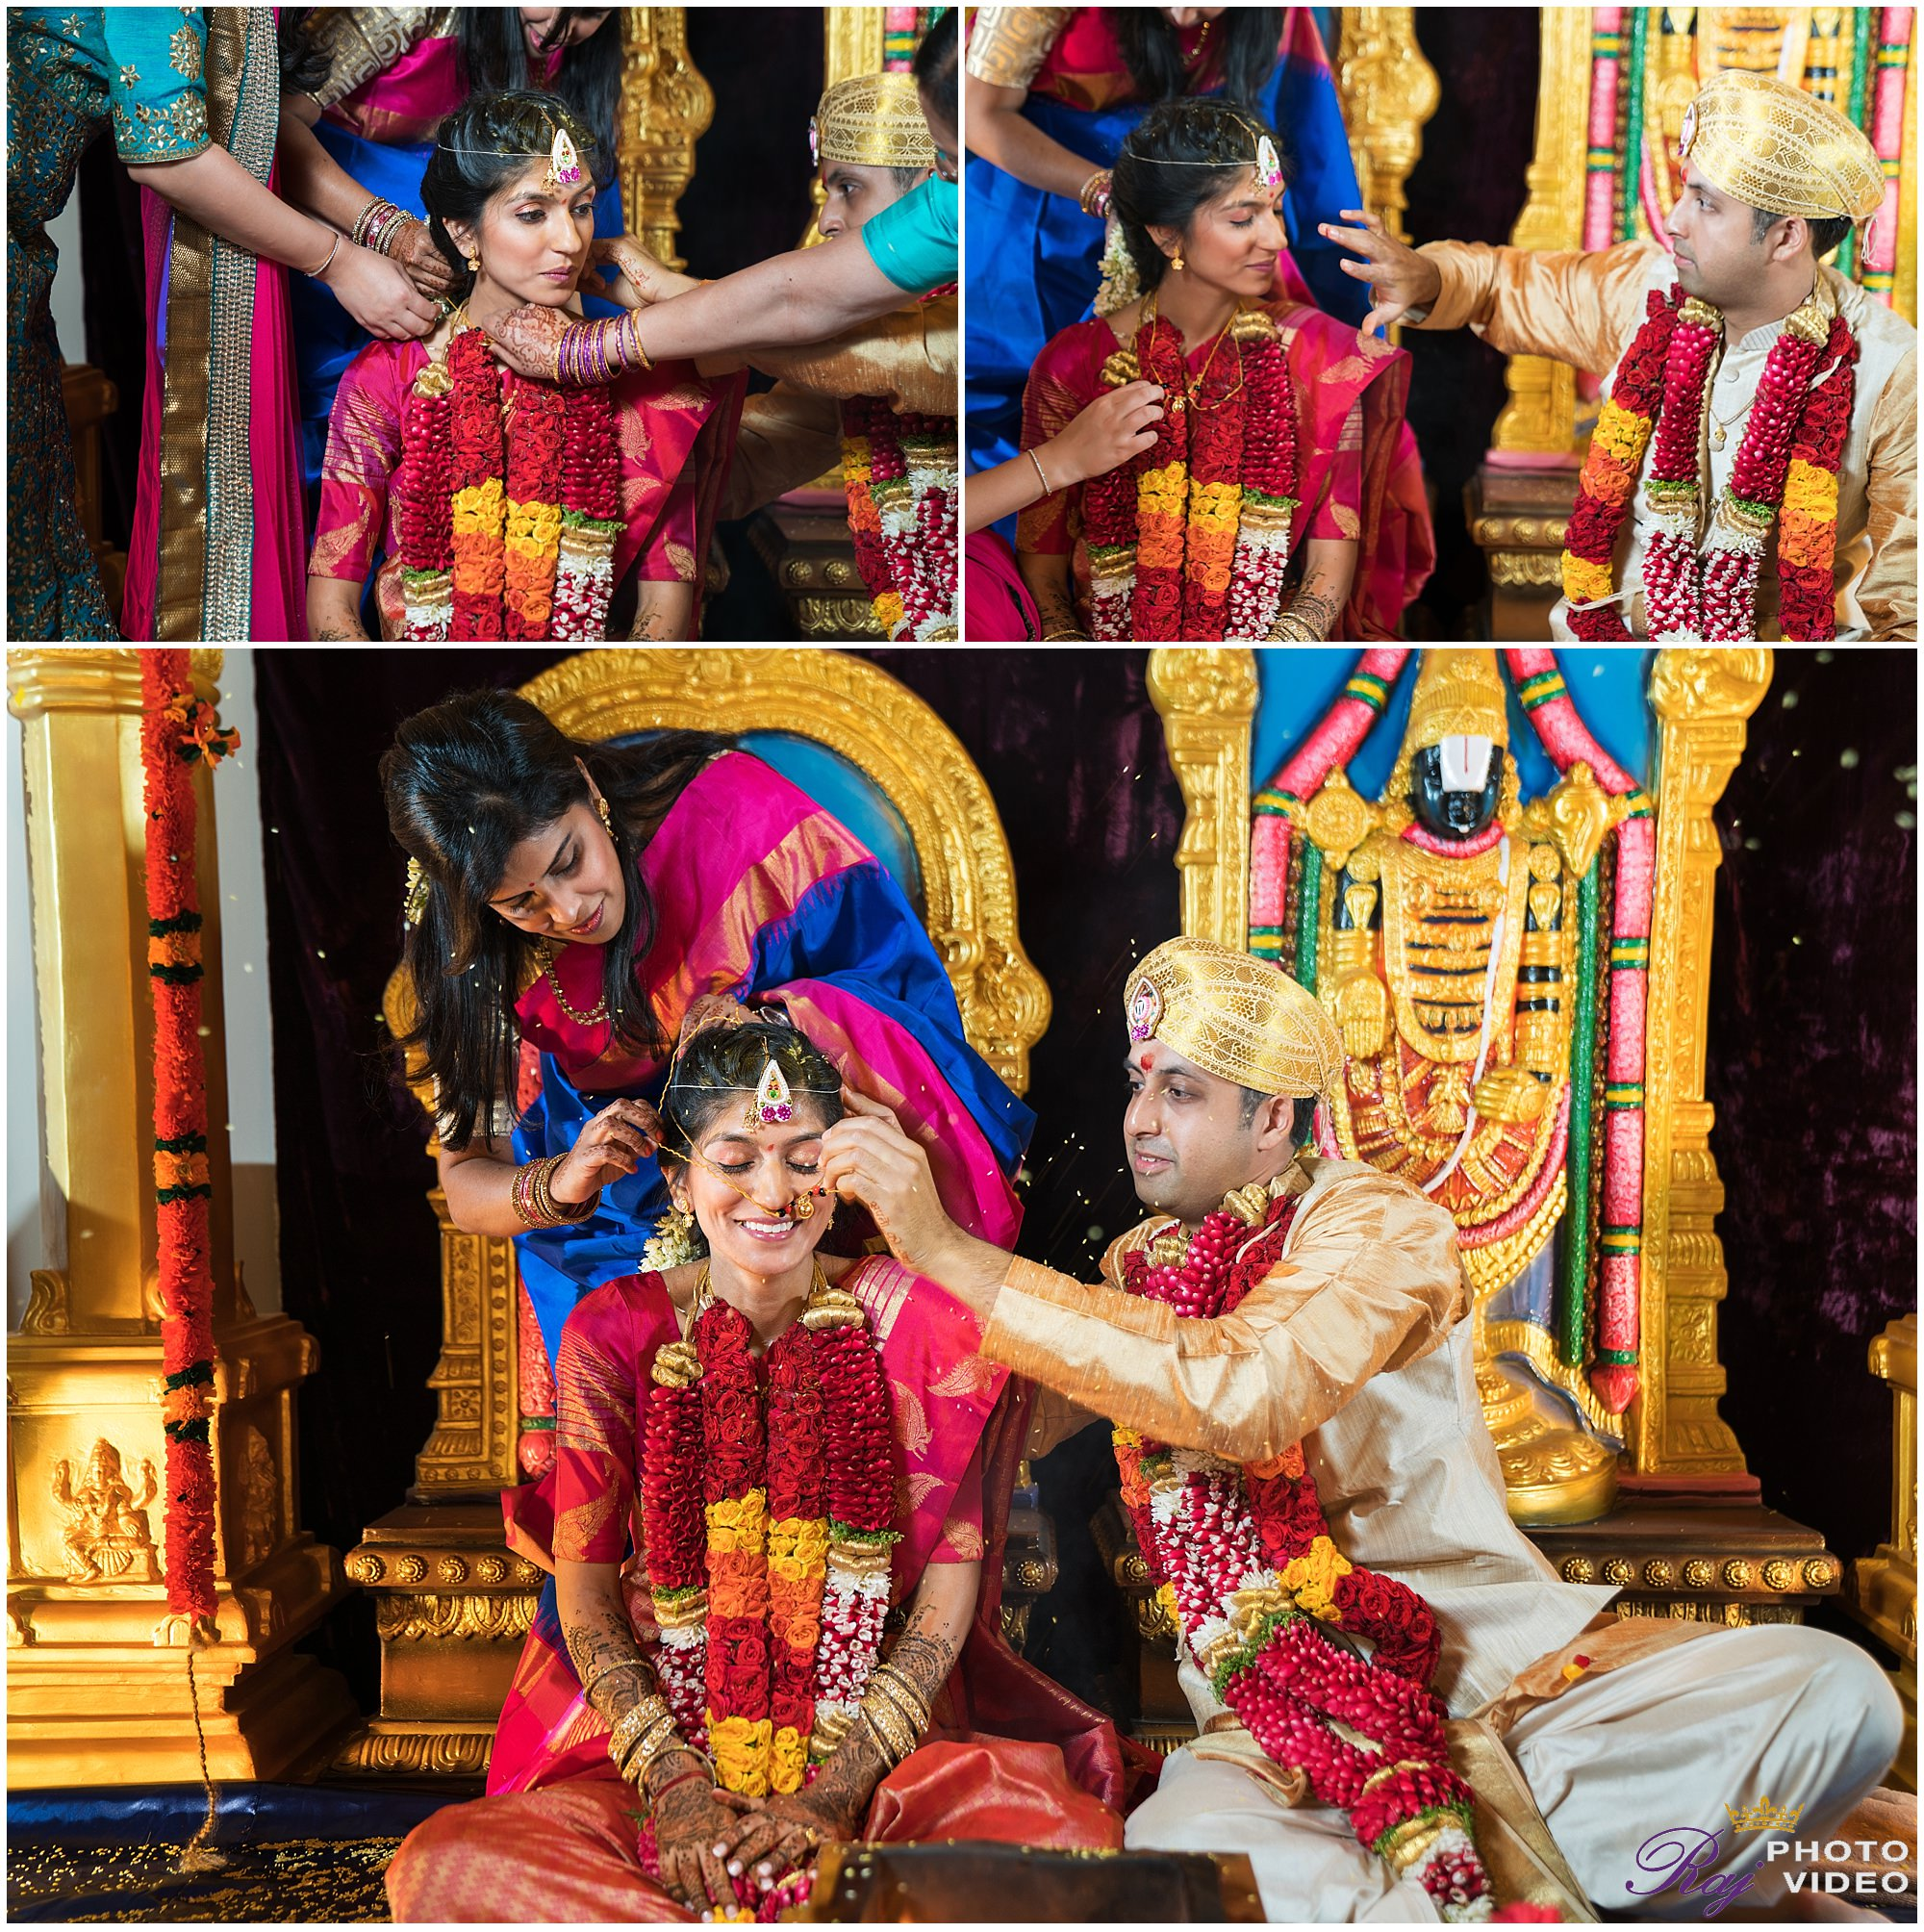 Sri_Venkata_Krishna_Kshetra_Temple_Tempe_Arizona_Indian_Wedding_Sapna_Shyam-10.jpg